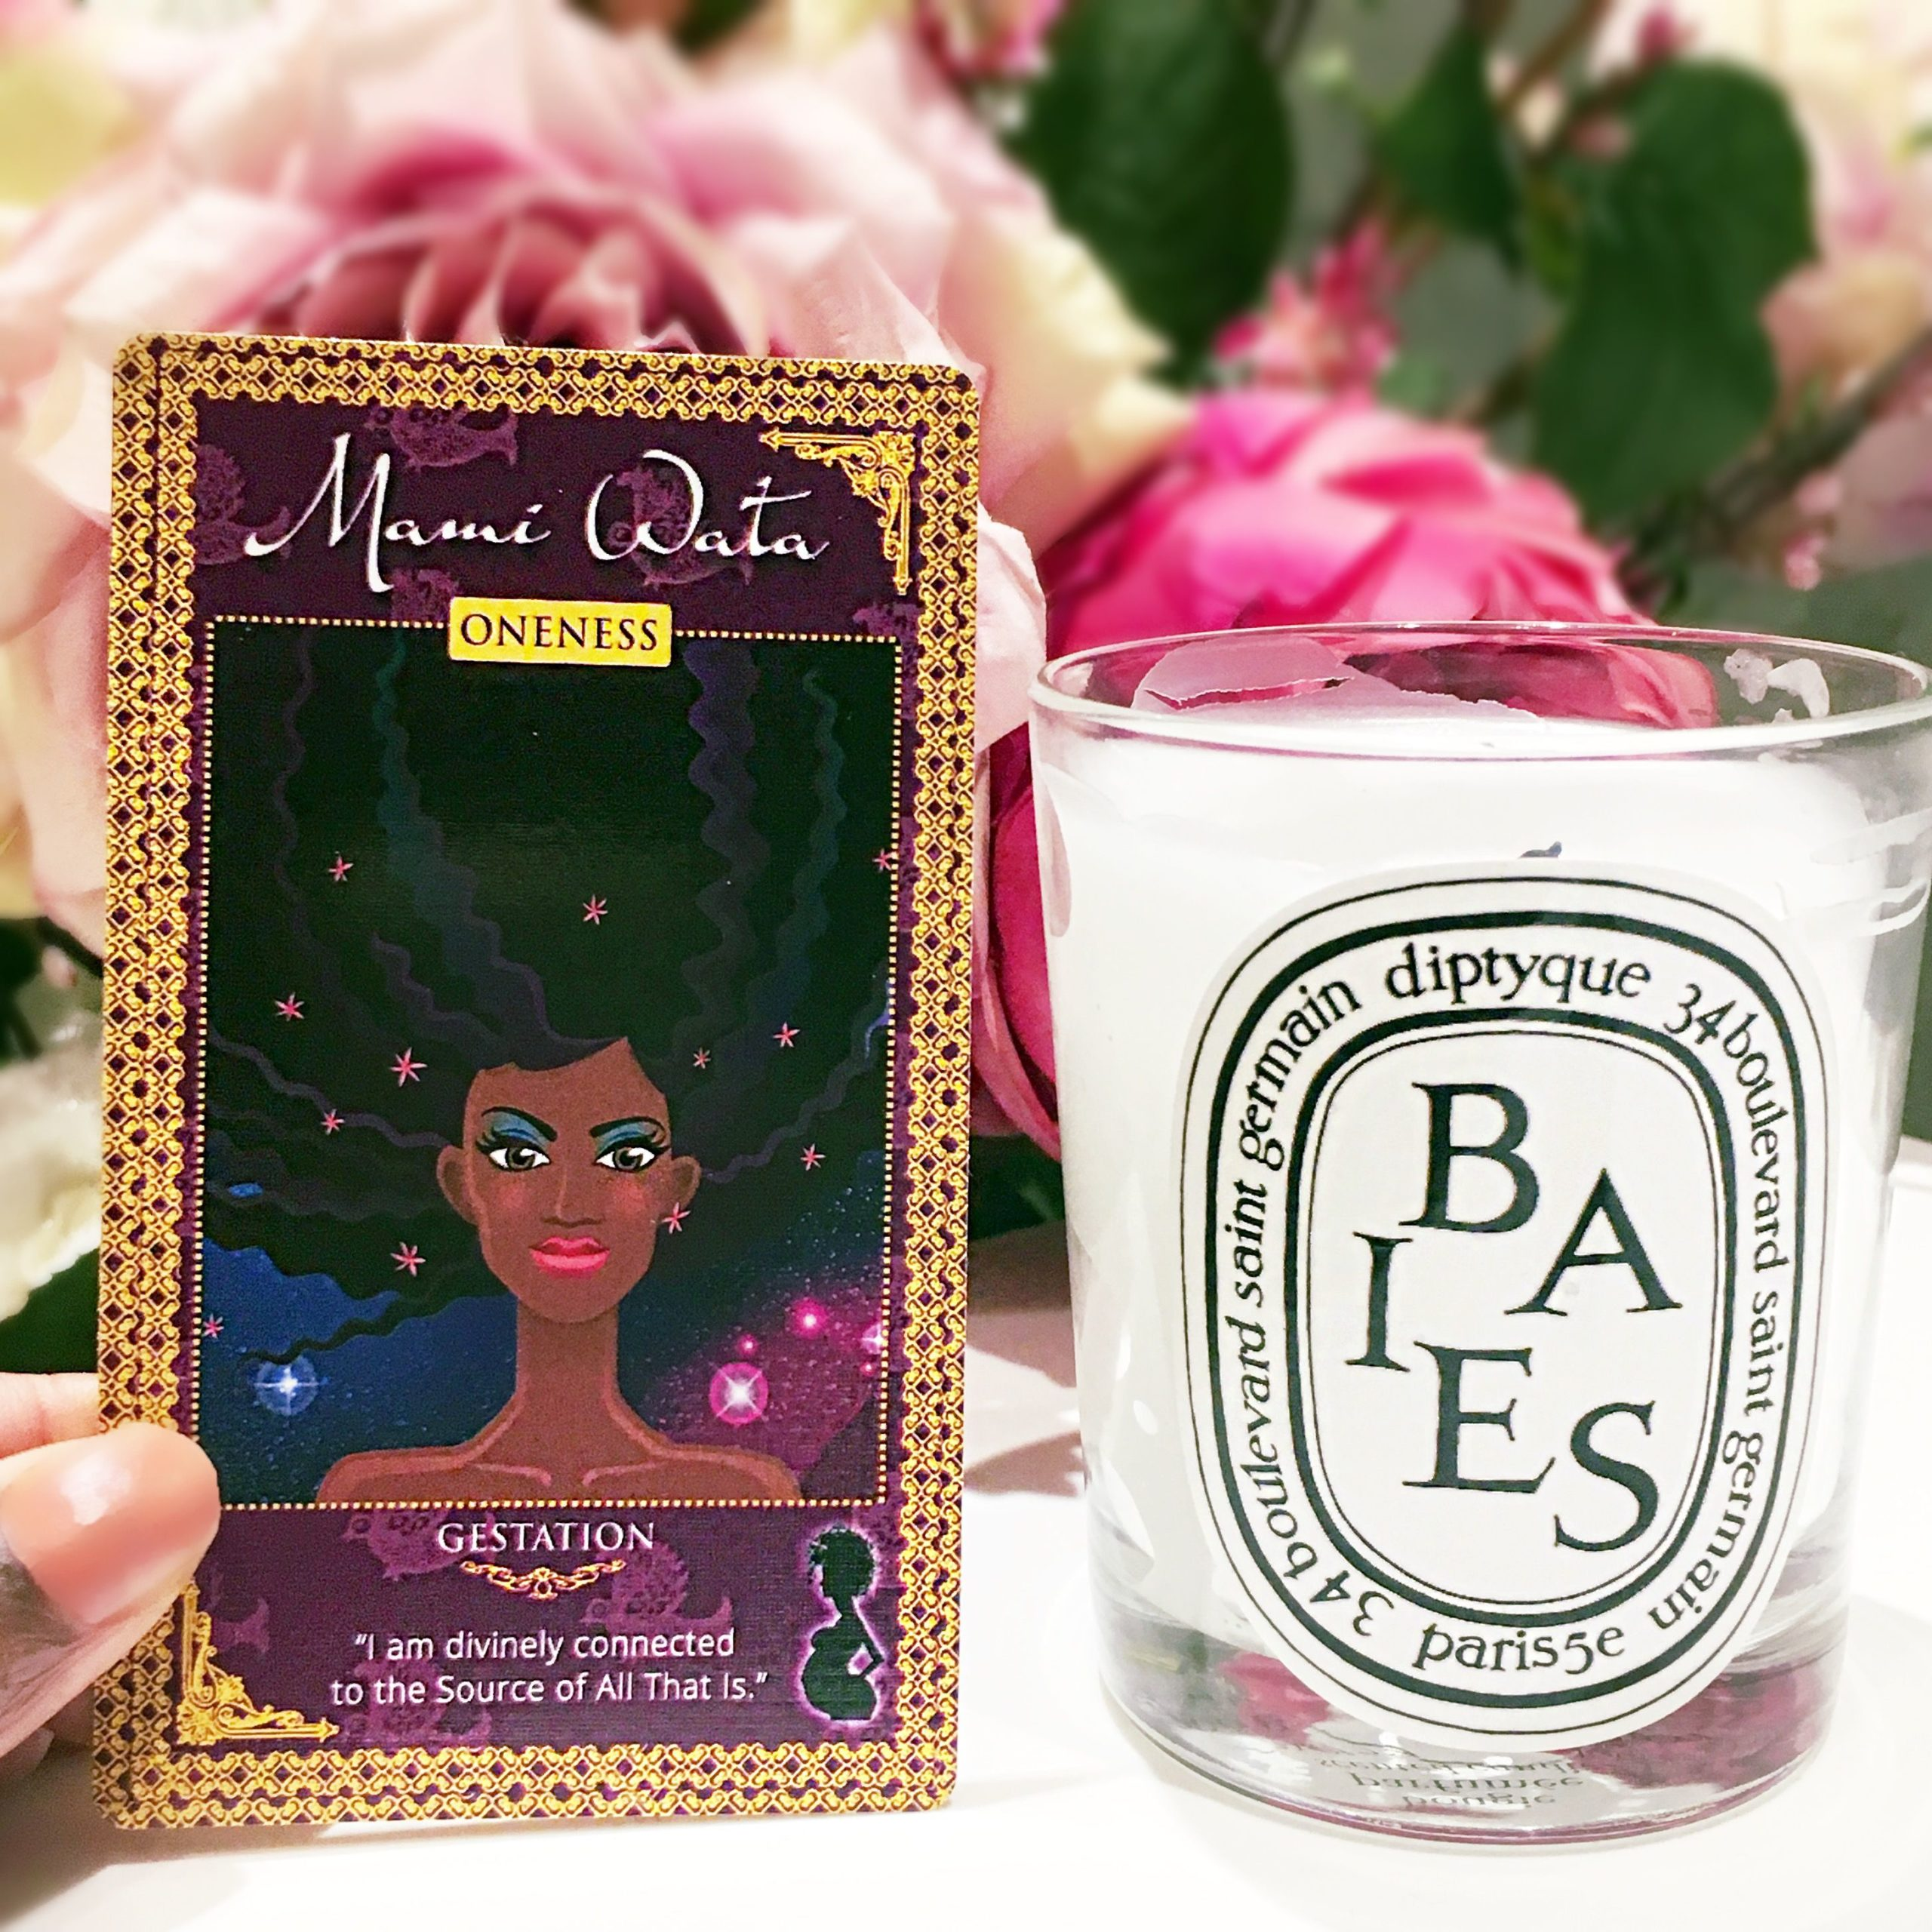 Womanifesting-Goddess-Affirmation-Card-Diptyque-Candle-scaled.jpg